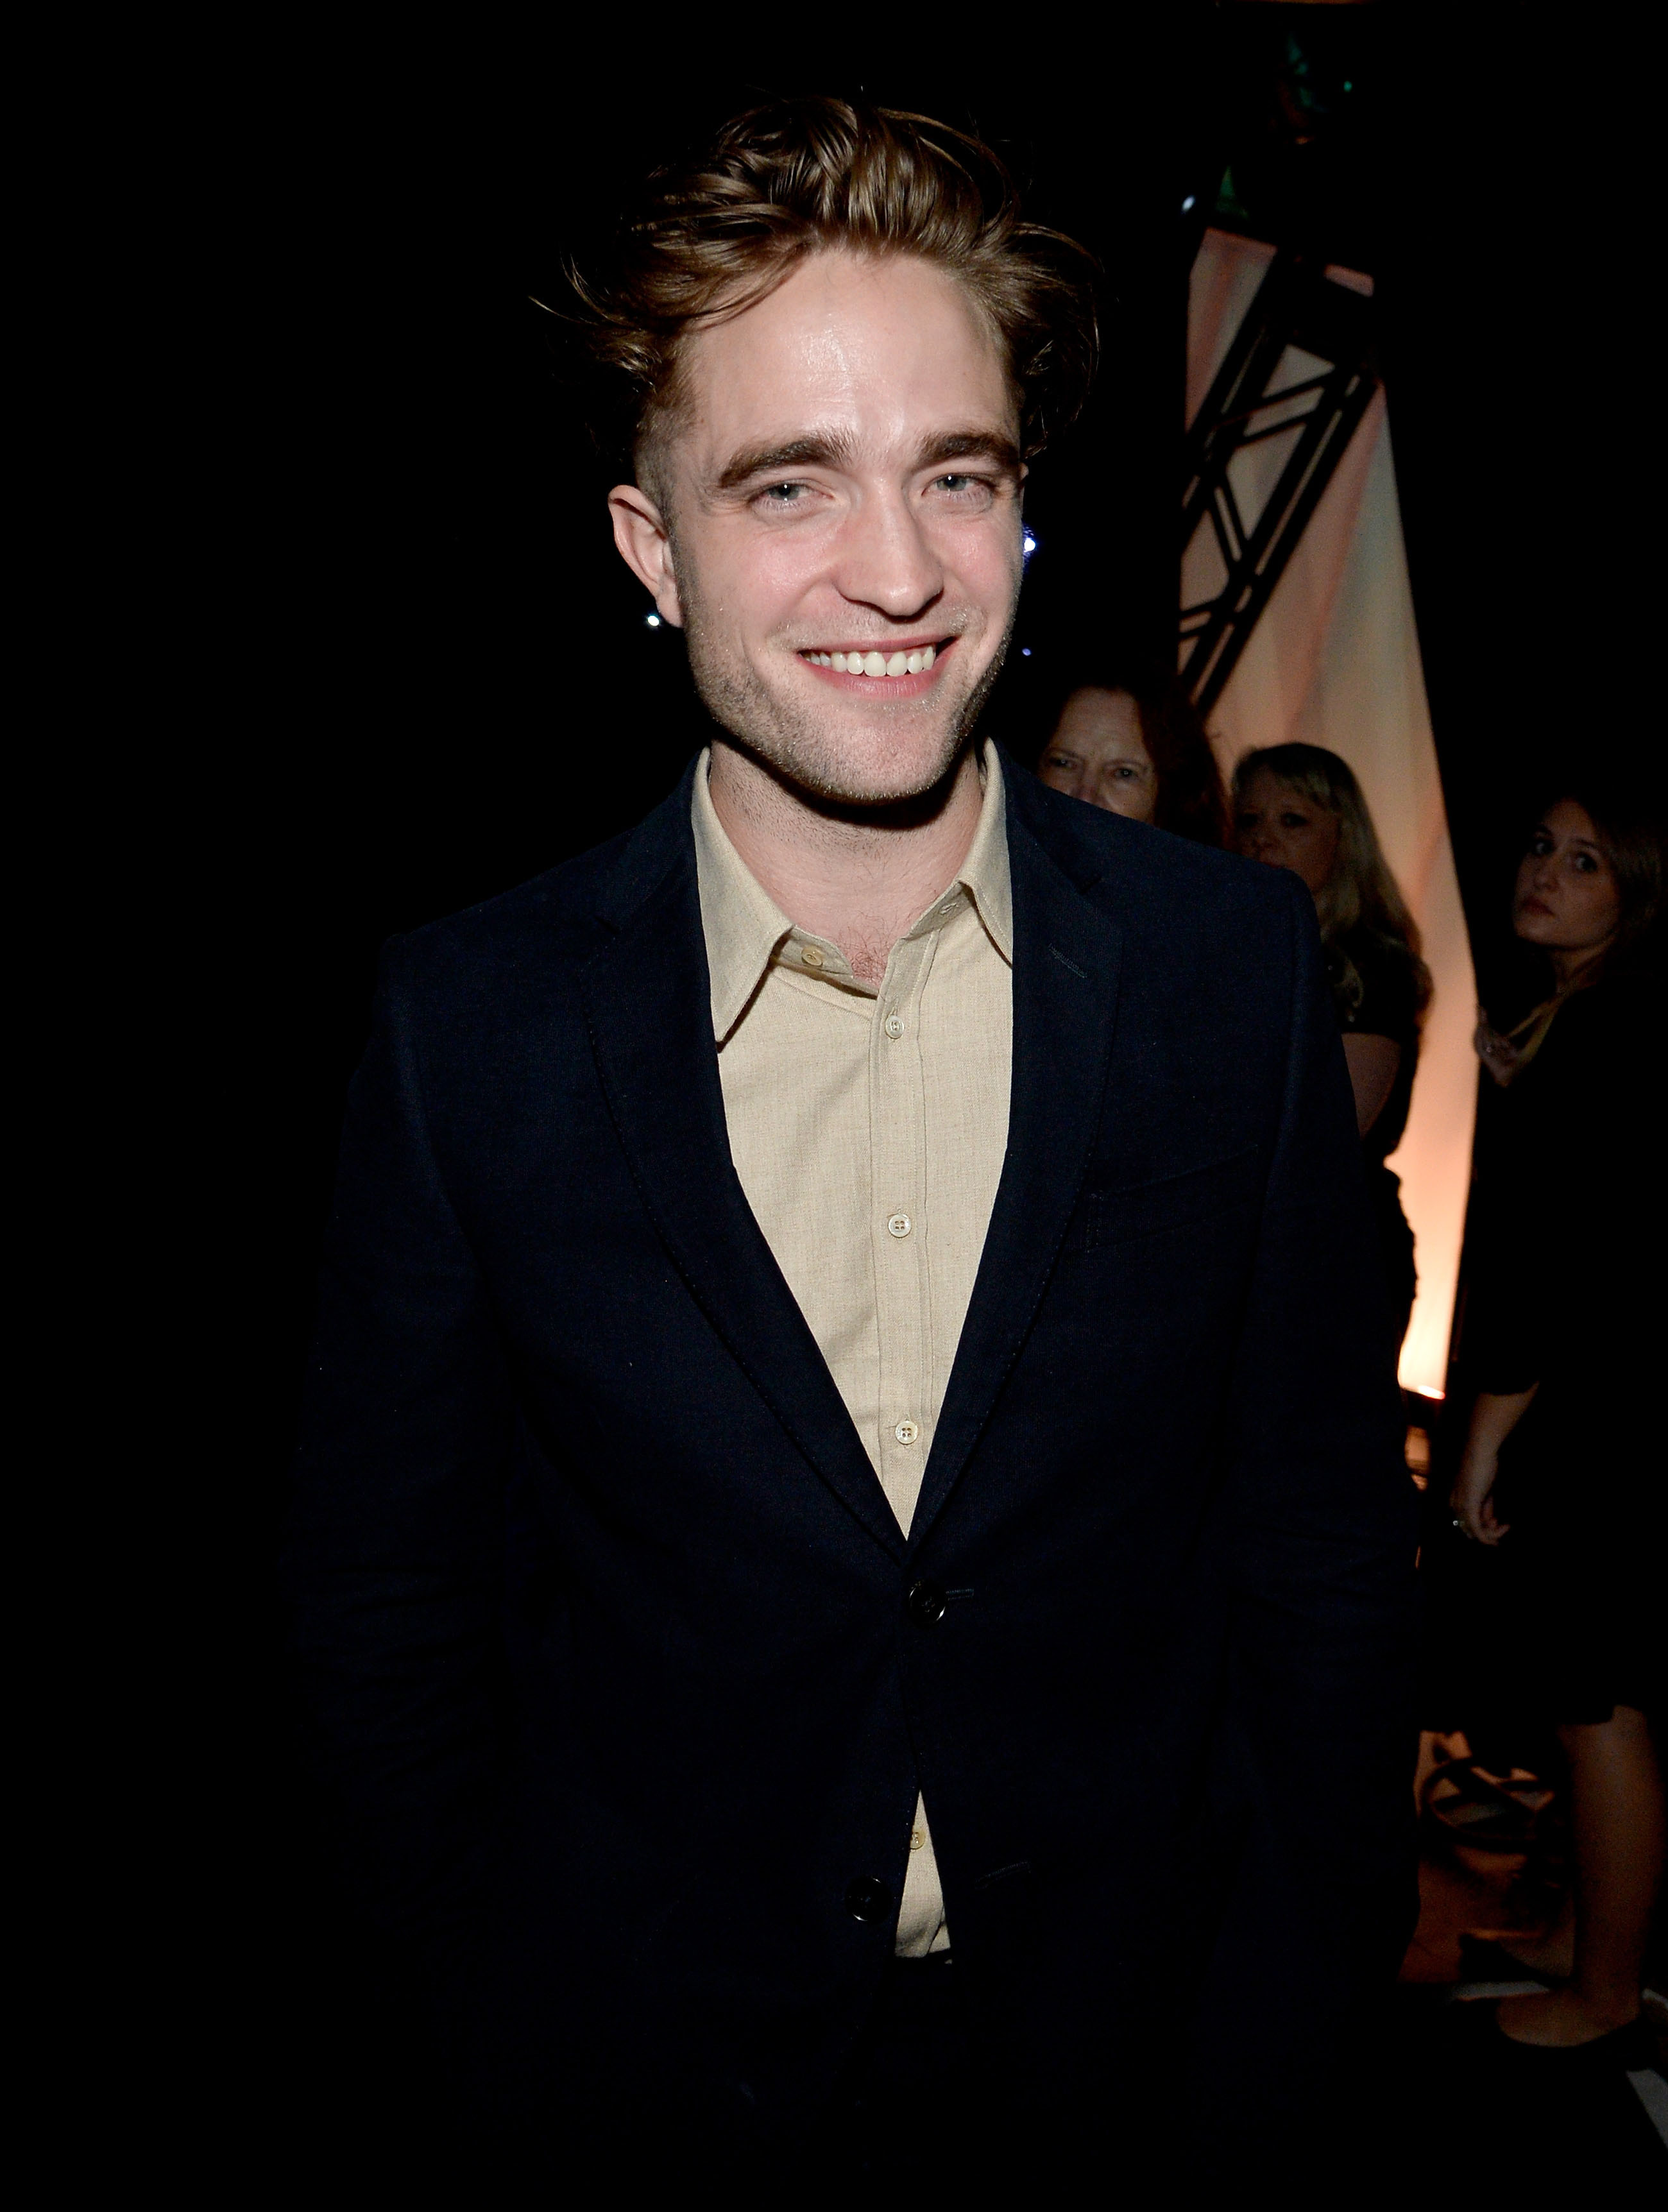 ROBERT PATTINSON ATTENDS LA EVENTS WITH NEW LOOK